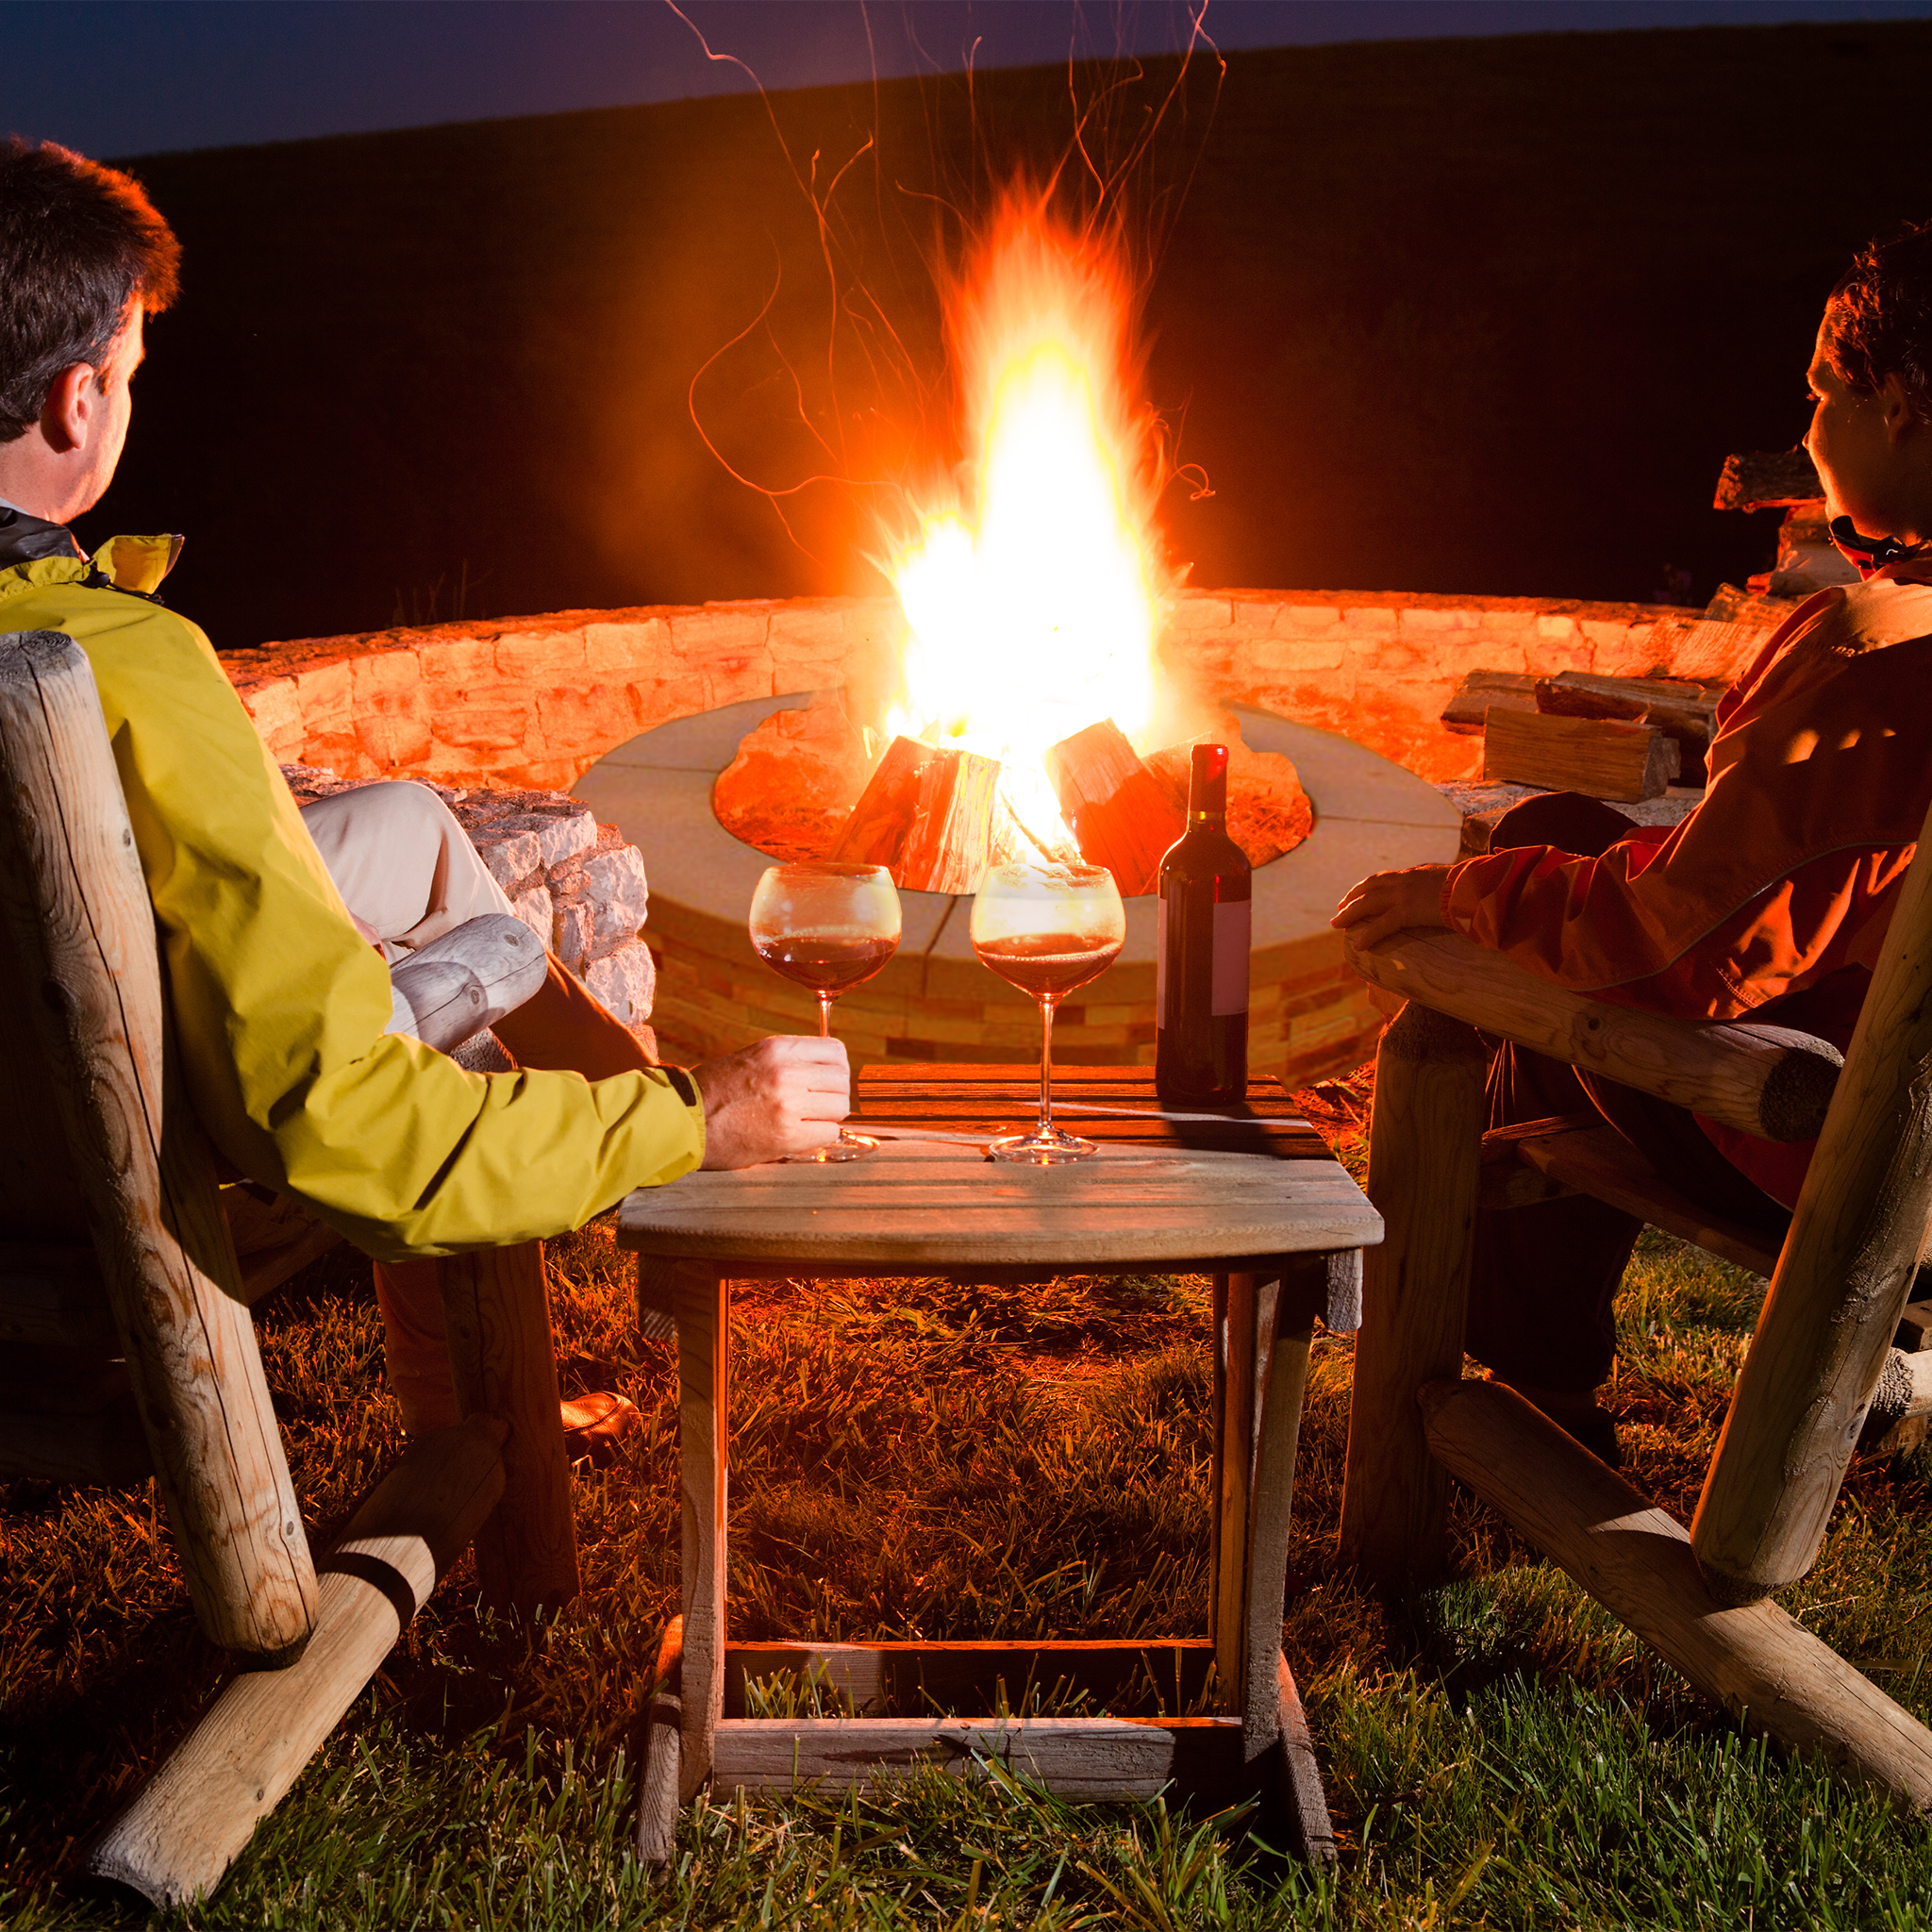 A photo of two people drinking wine by a fire pit.